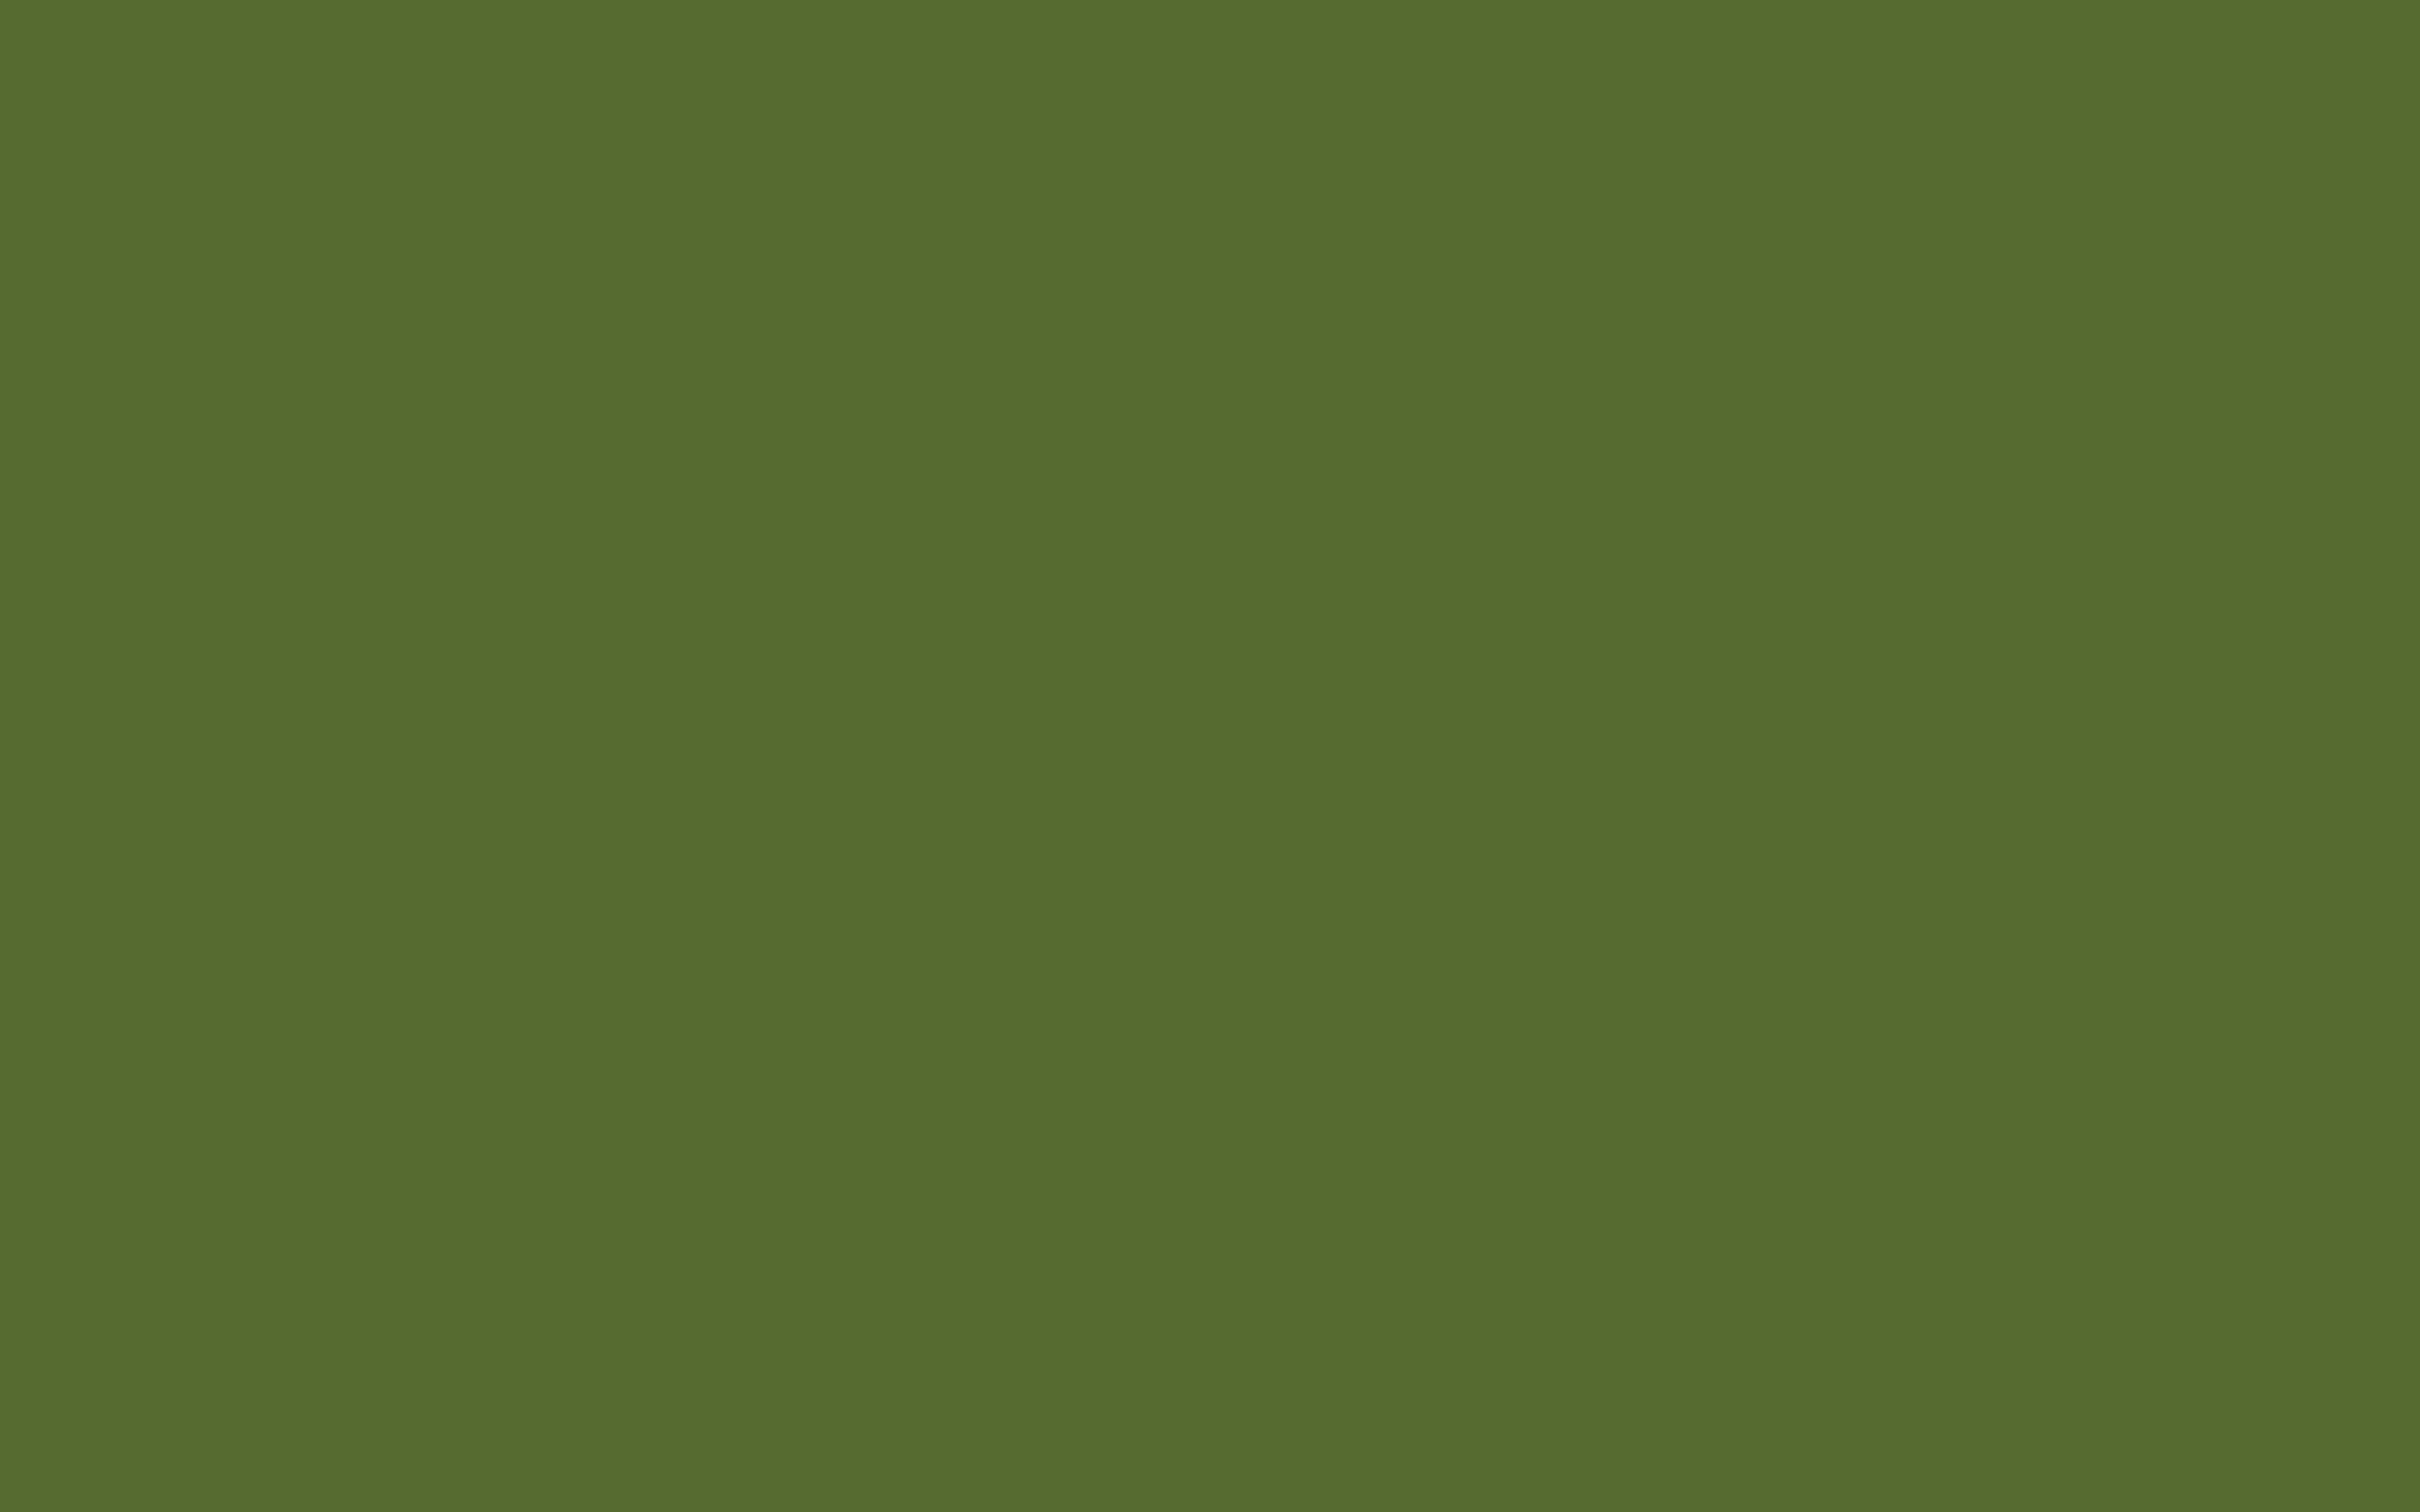 2880x1800 Dark Olive Green Solid Color Background